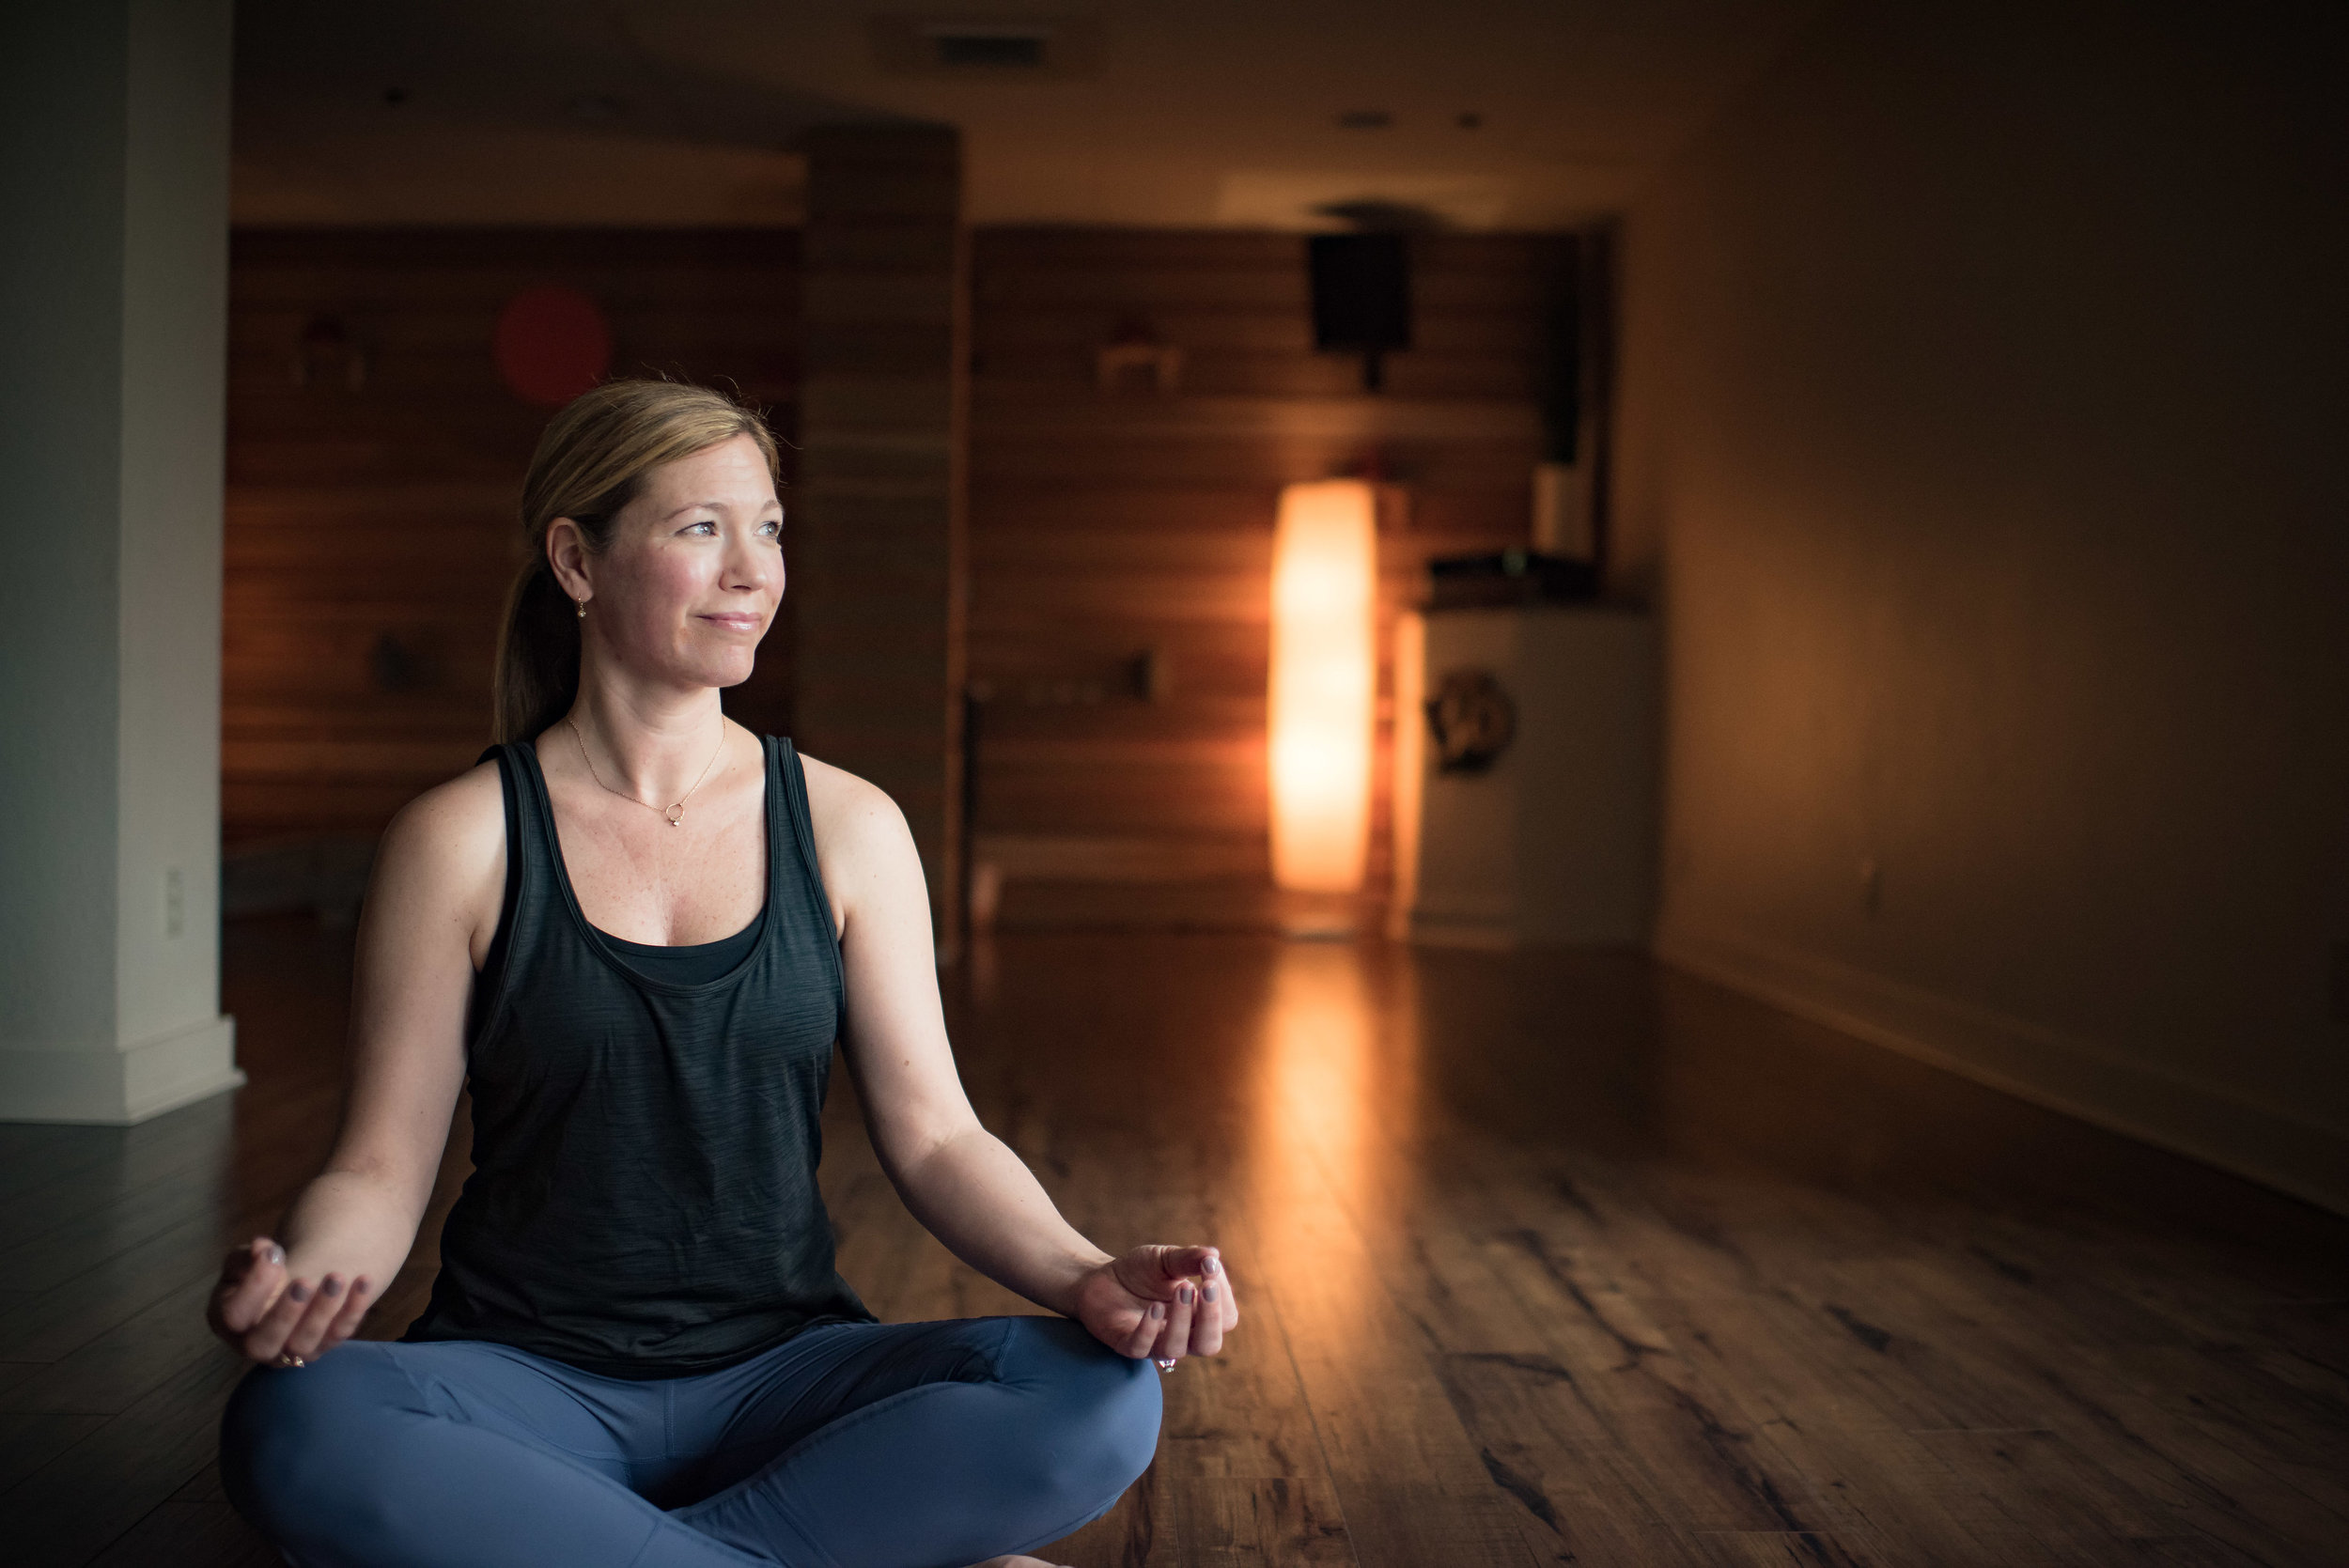 Alice harper mcmurray - flow yoga instructor